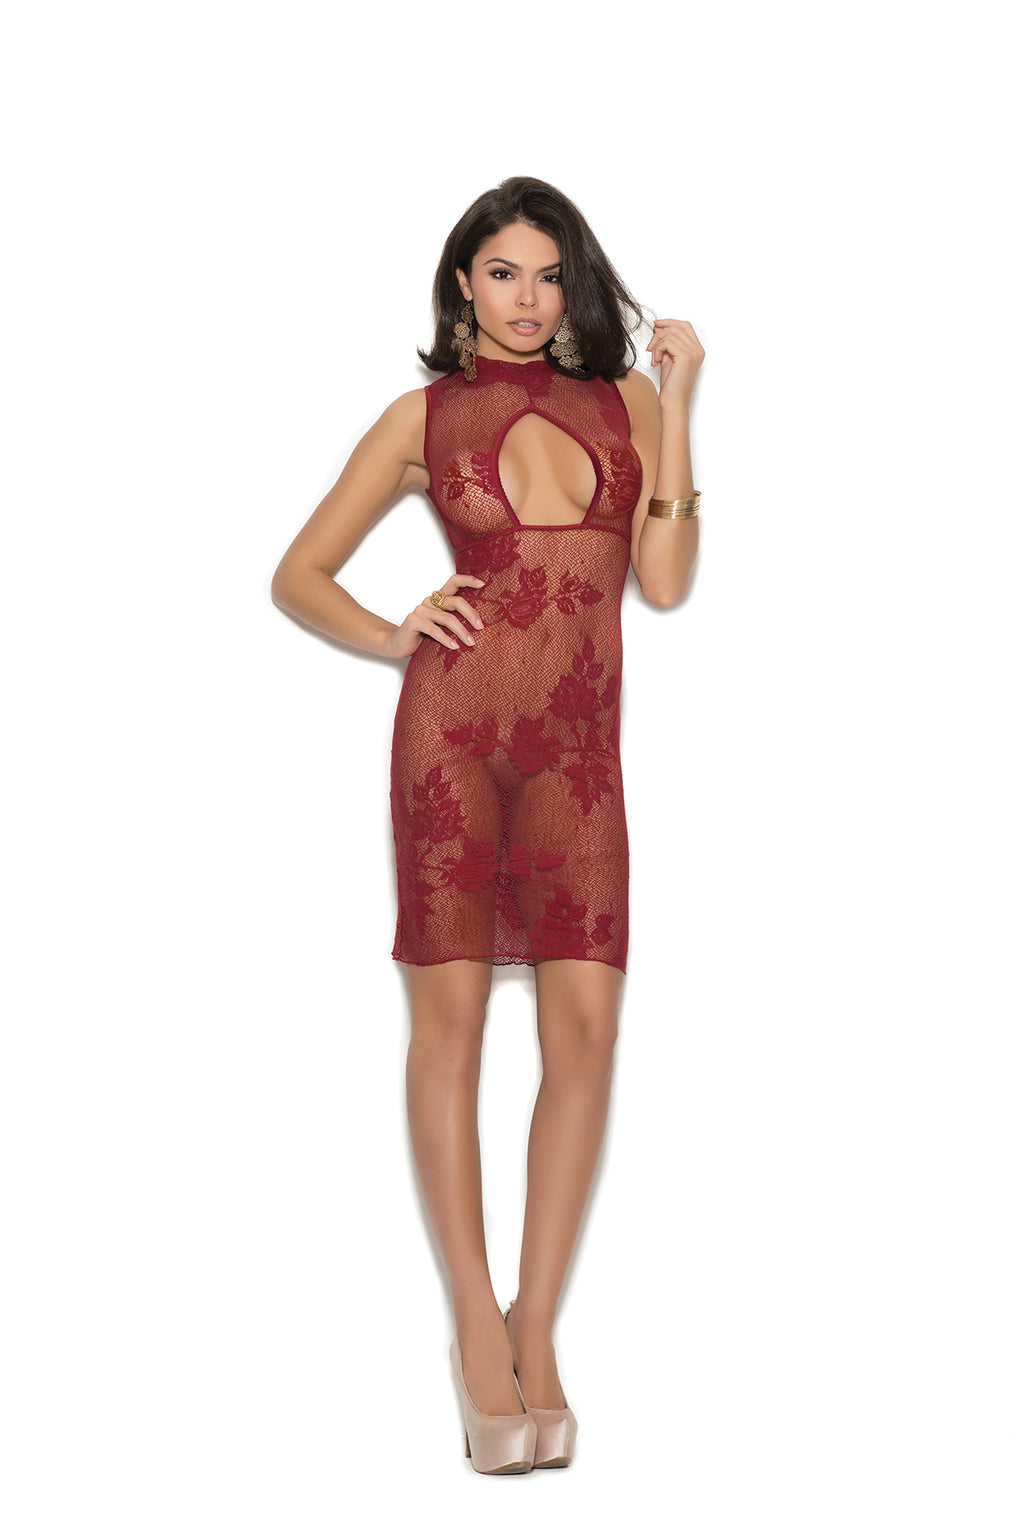 Elegant Moments 1369 Burgundy Lace Dress with Keyhole Front